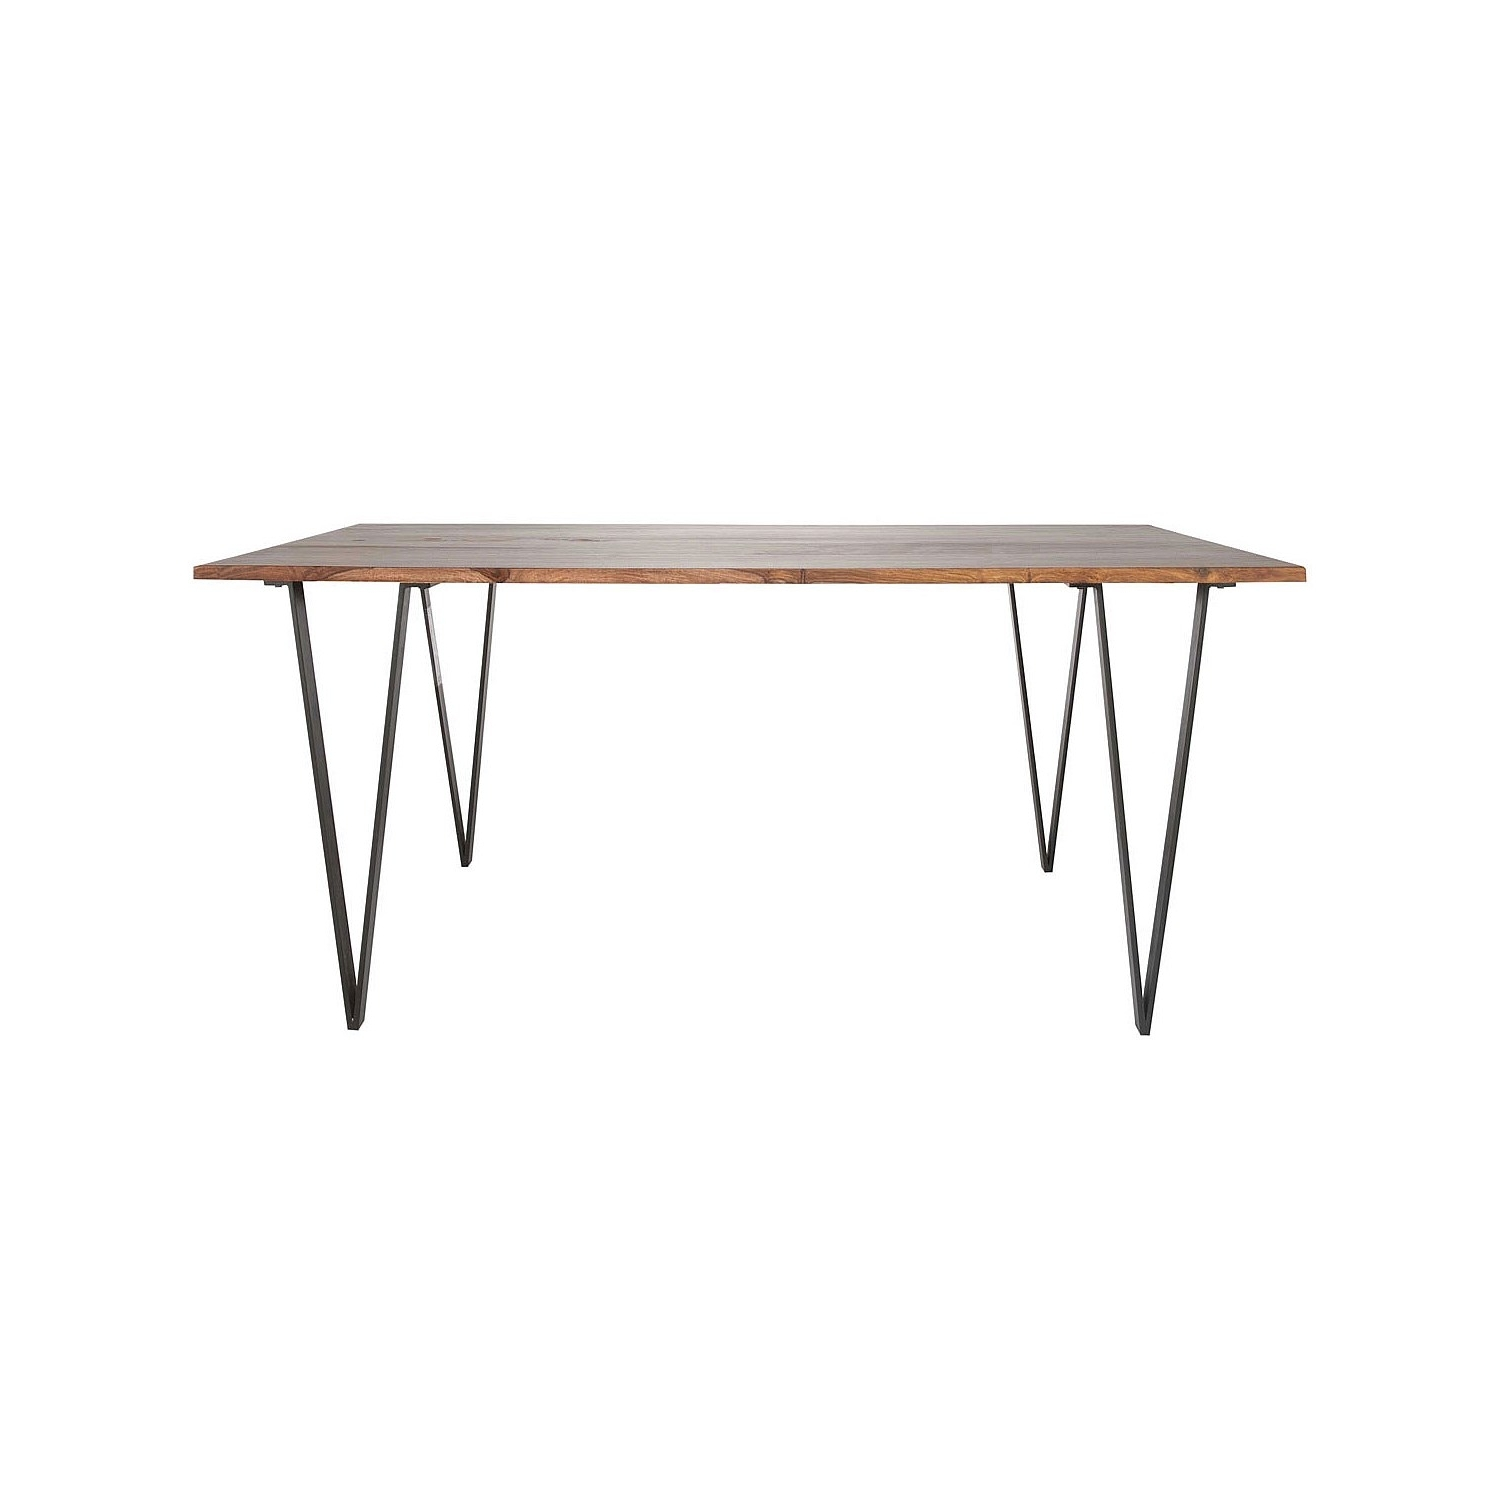 Most Recent Dining Tables – Wyatt Dining Table 175X90Cm Within Wyatt Dining Tables (View 15 of 25)